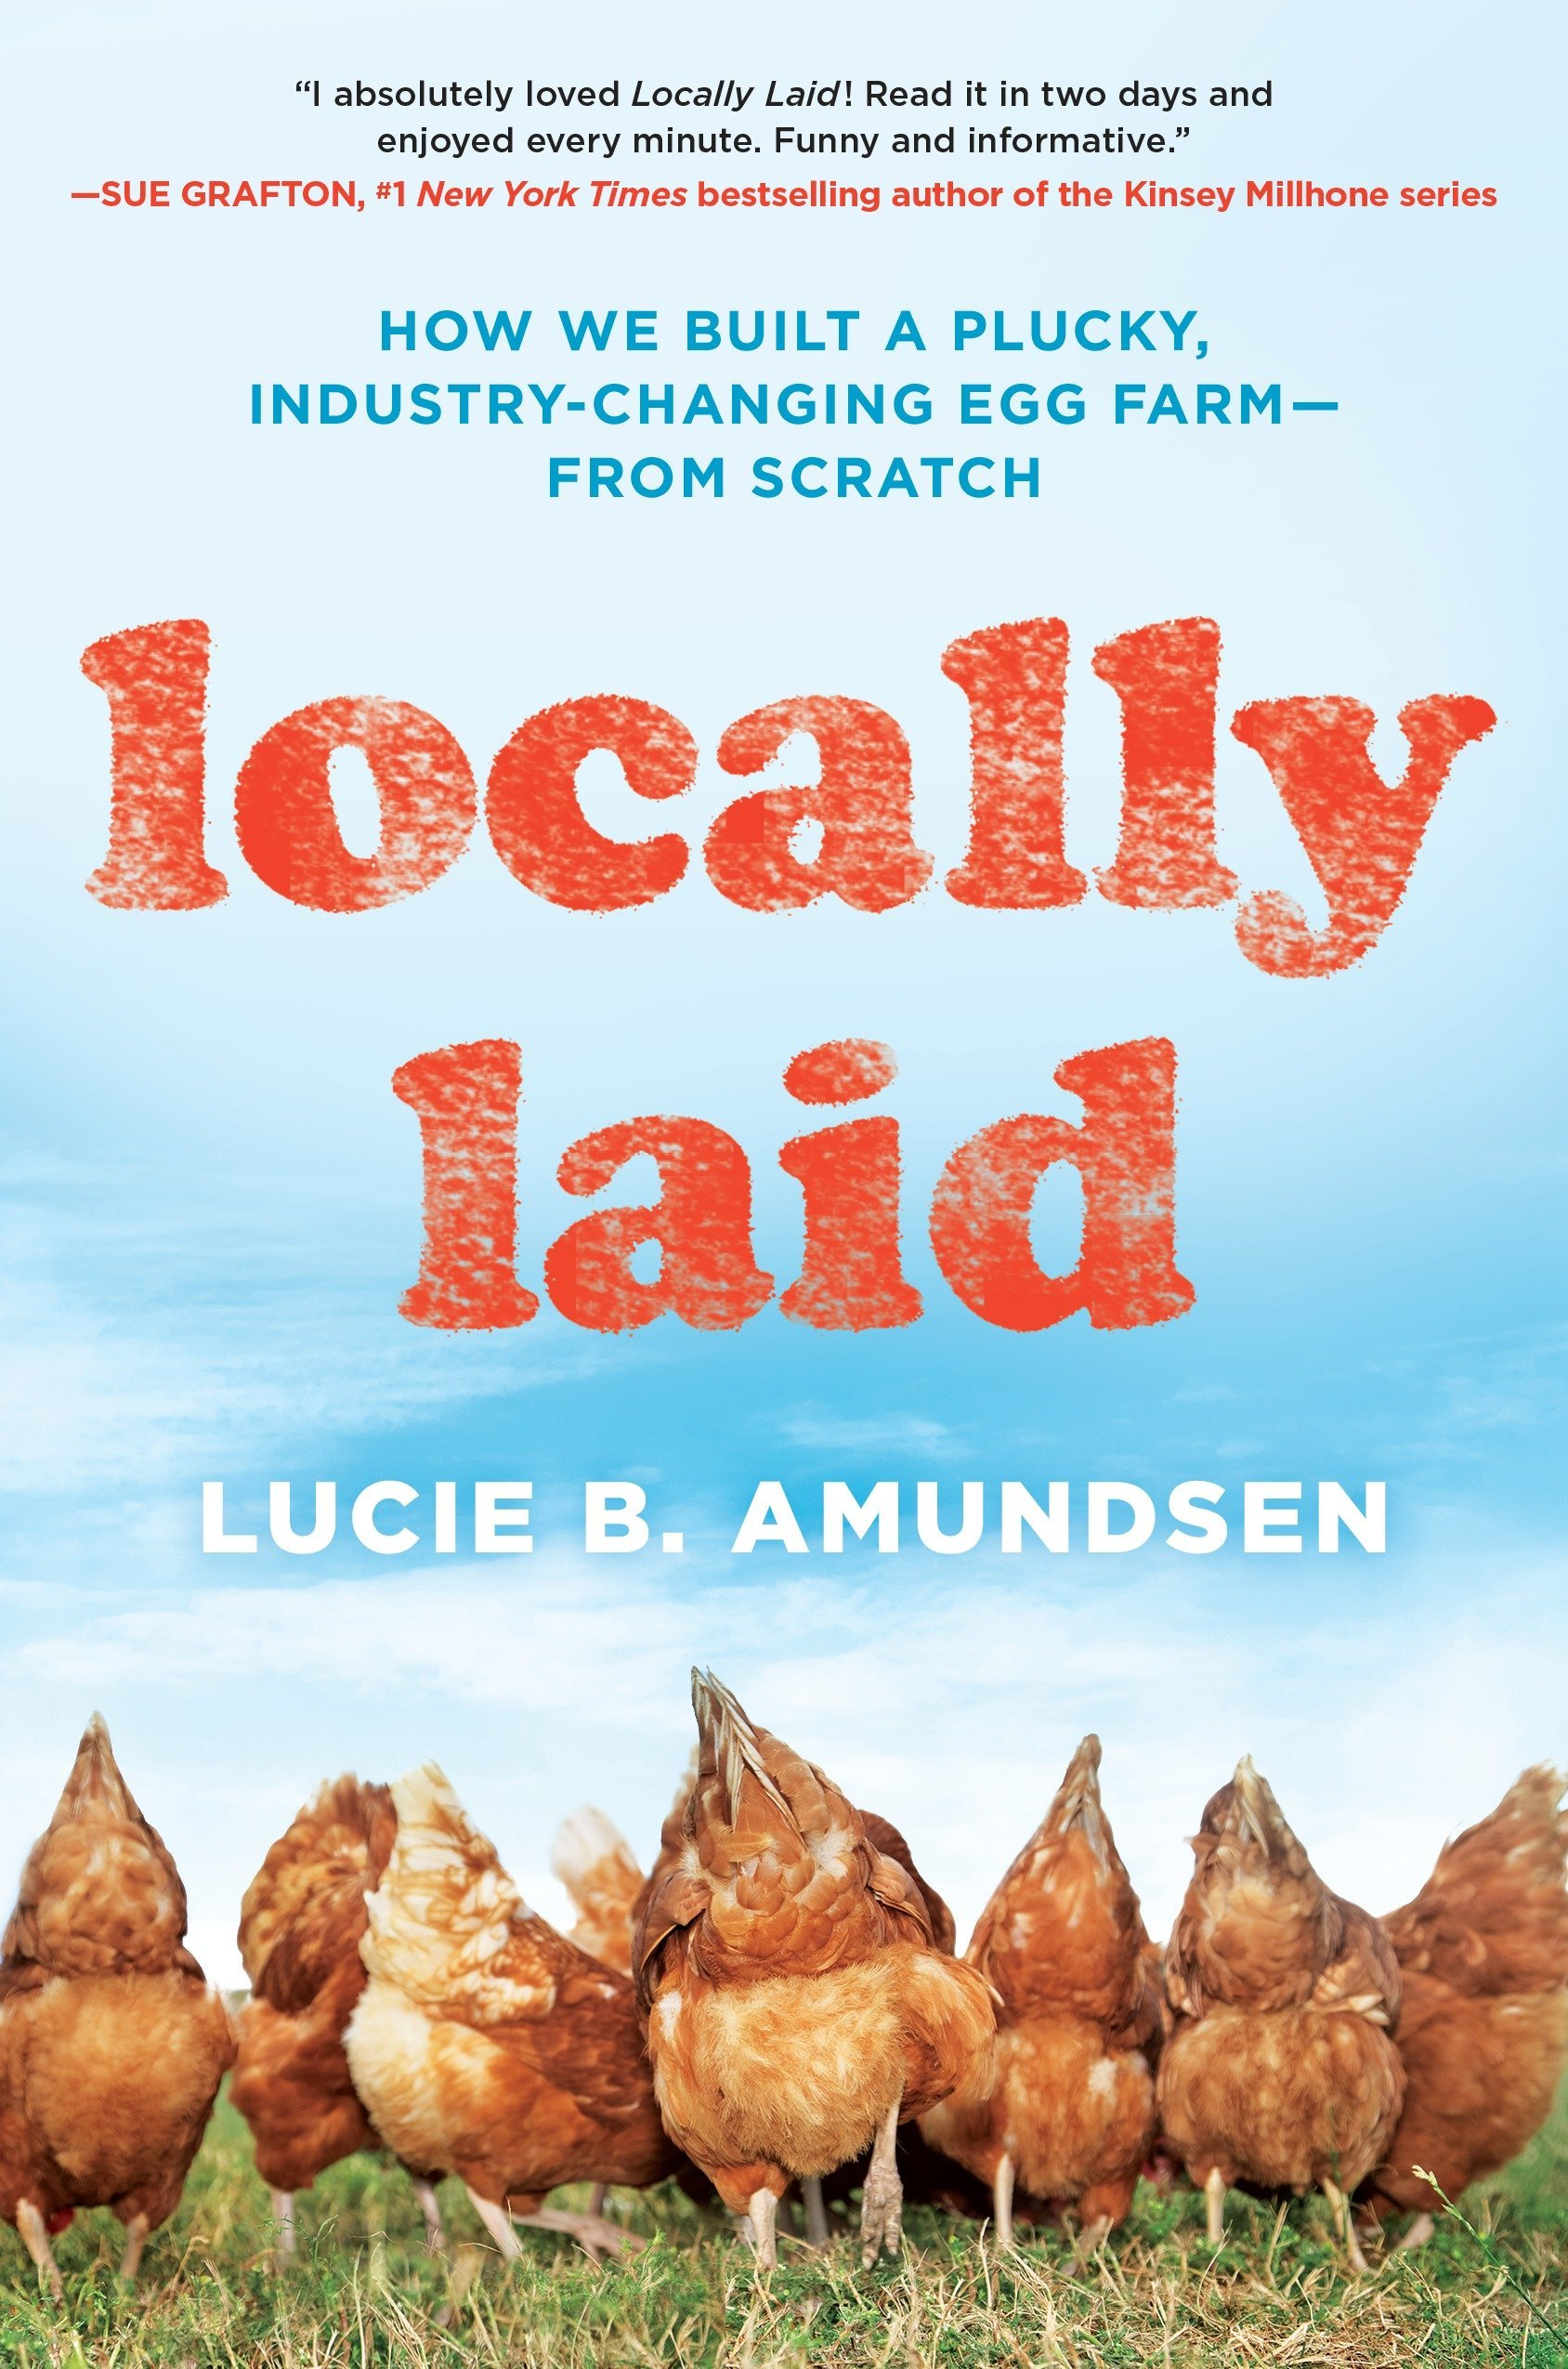 Locally Laid: How We Built a Plucky, Industry-changing Egg Farm - from Scratch ebook